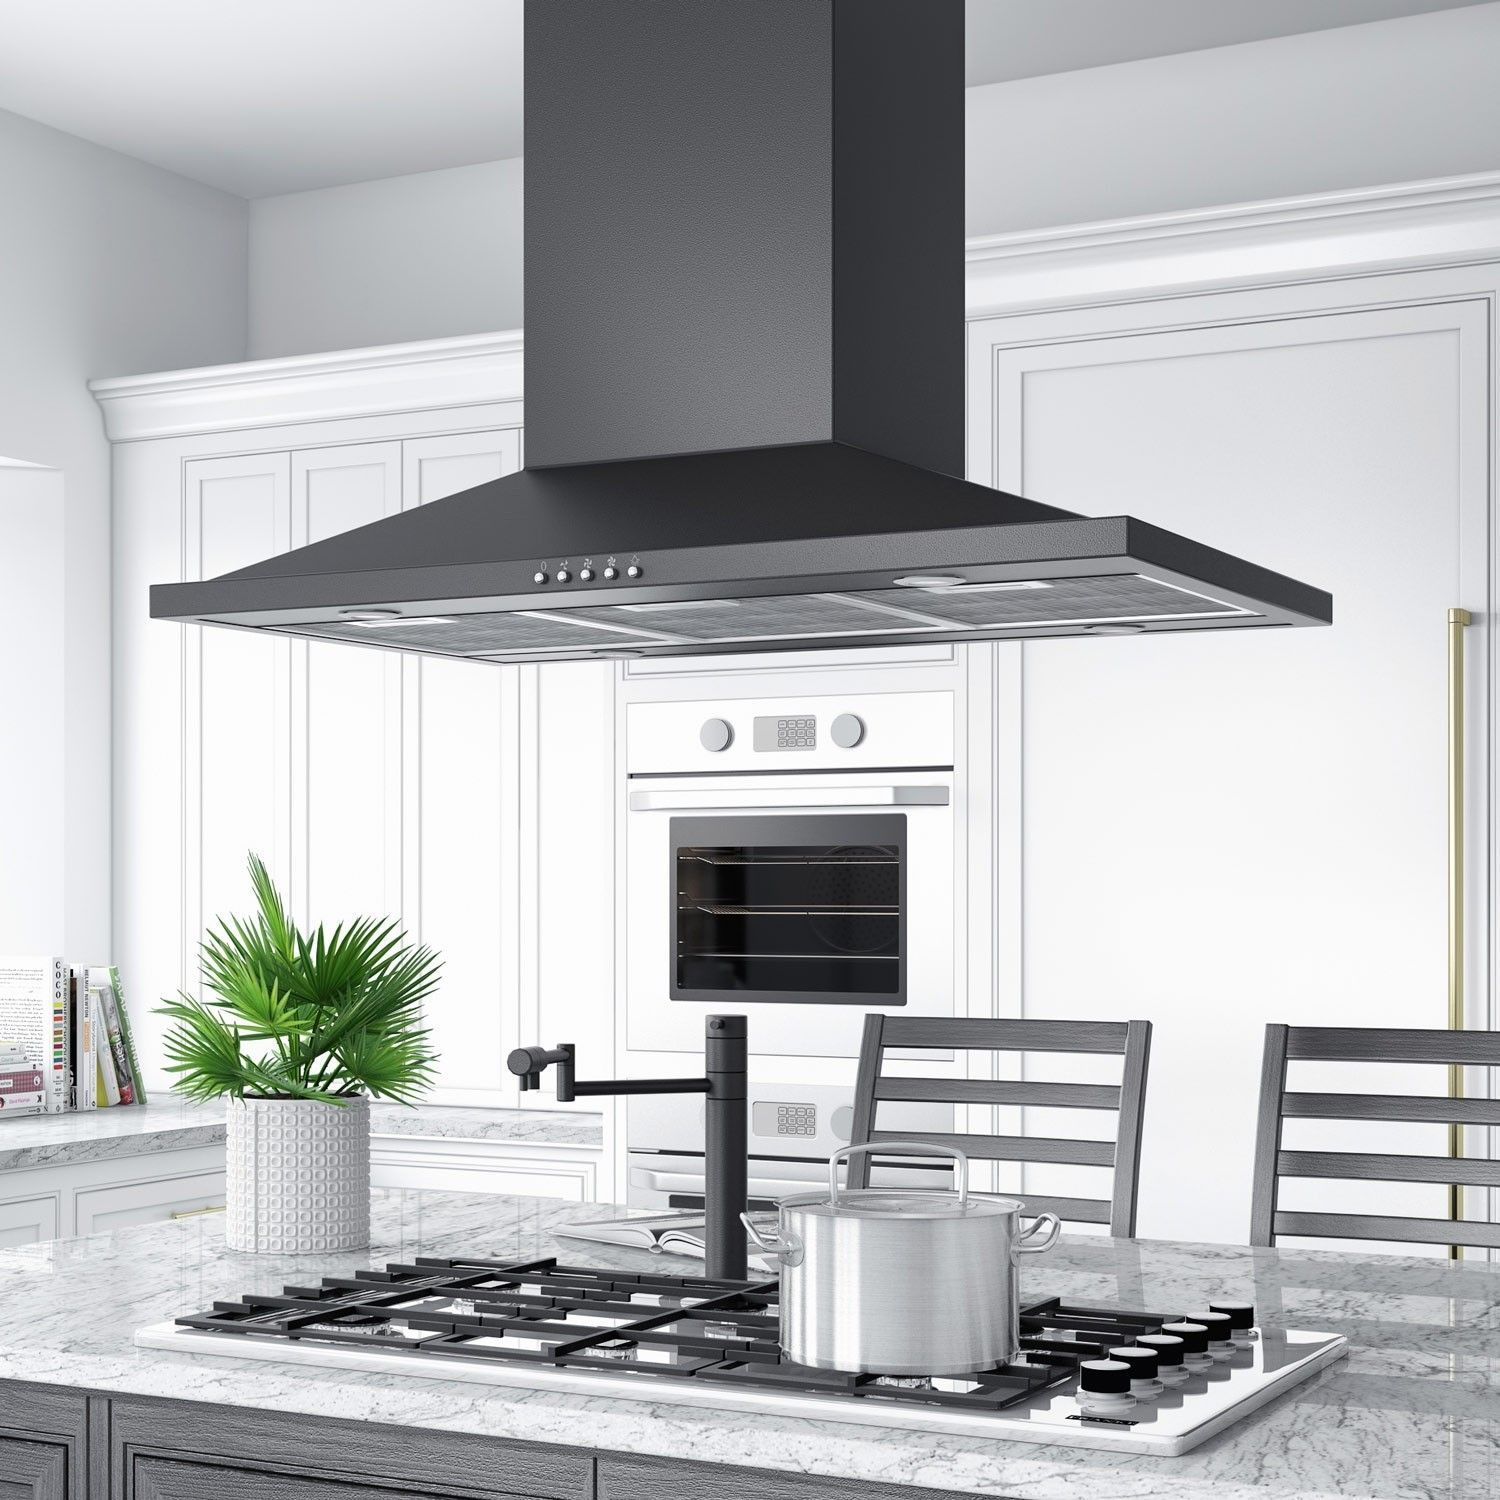 36 Artisan Series Stainless Steel Black Island Range Hood 600 Cfm Fan Kitchen 600cfmrangehood Island Range Hood Island With Stove Stainless Steel Island